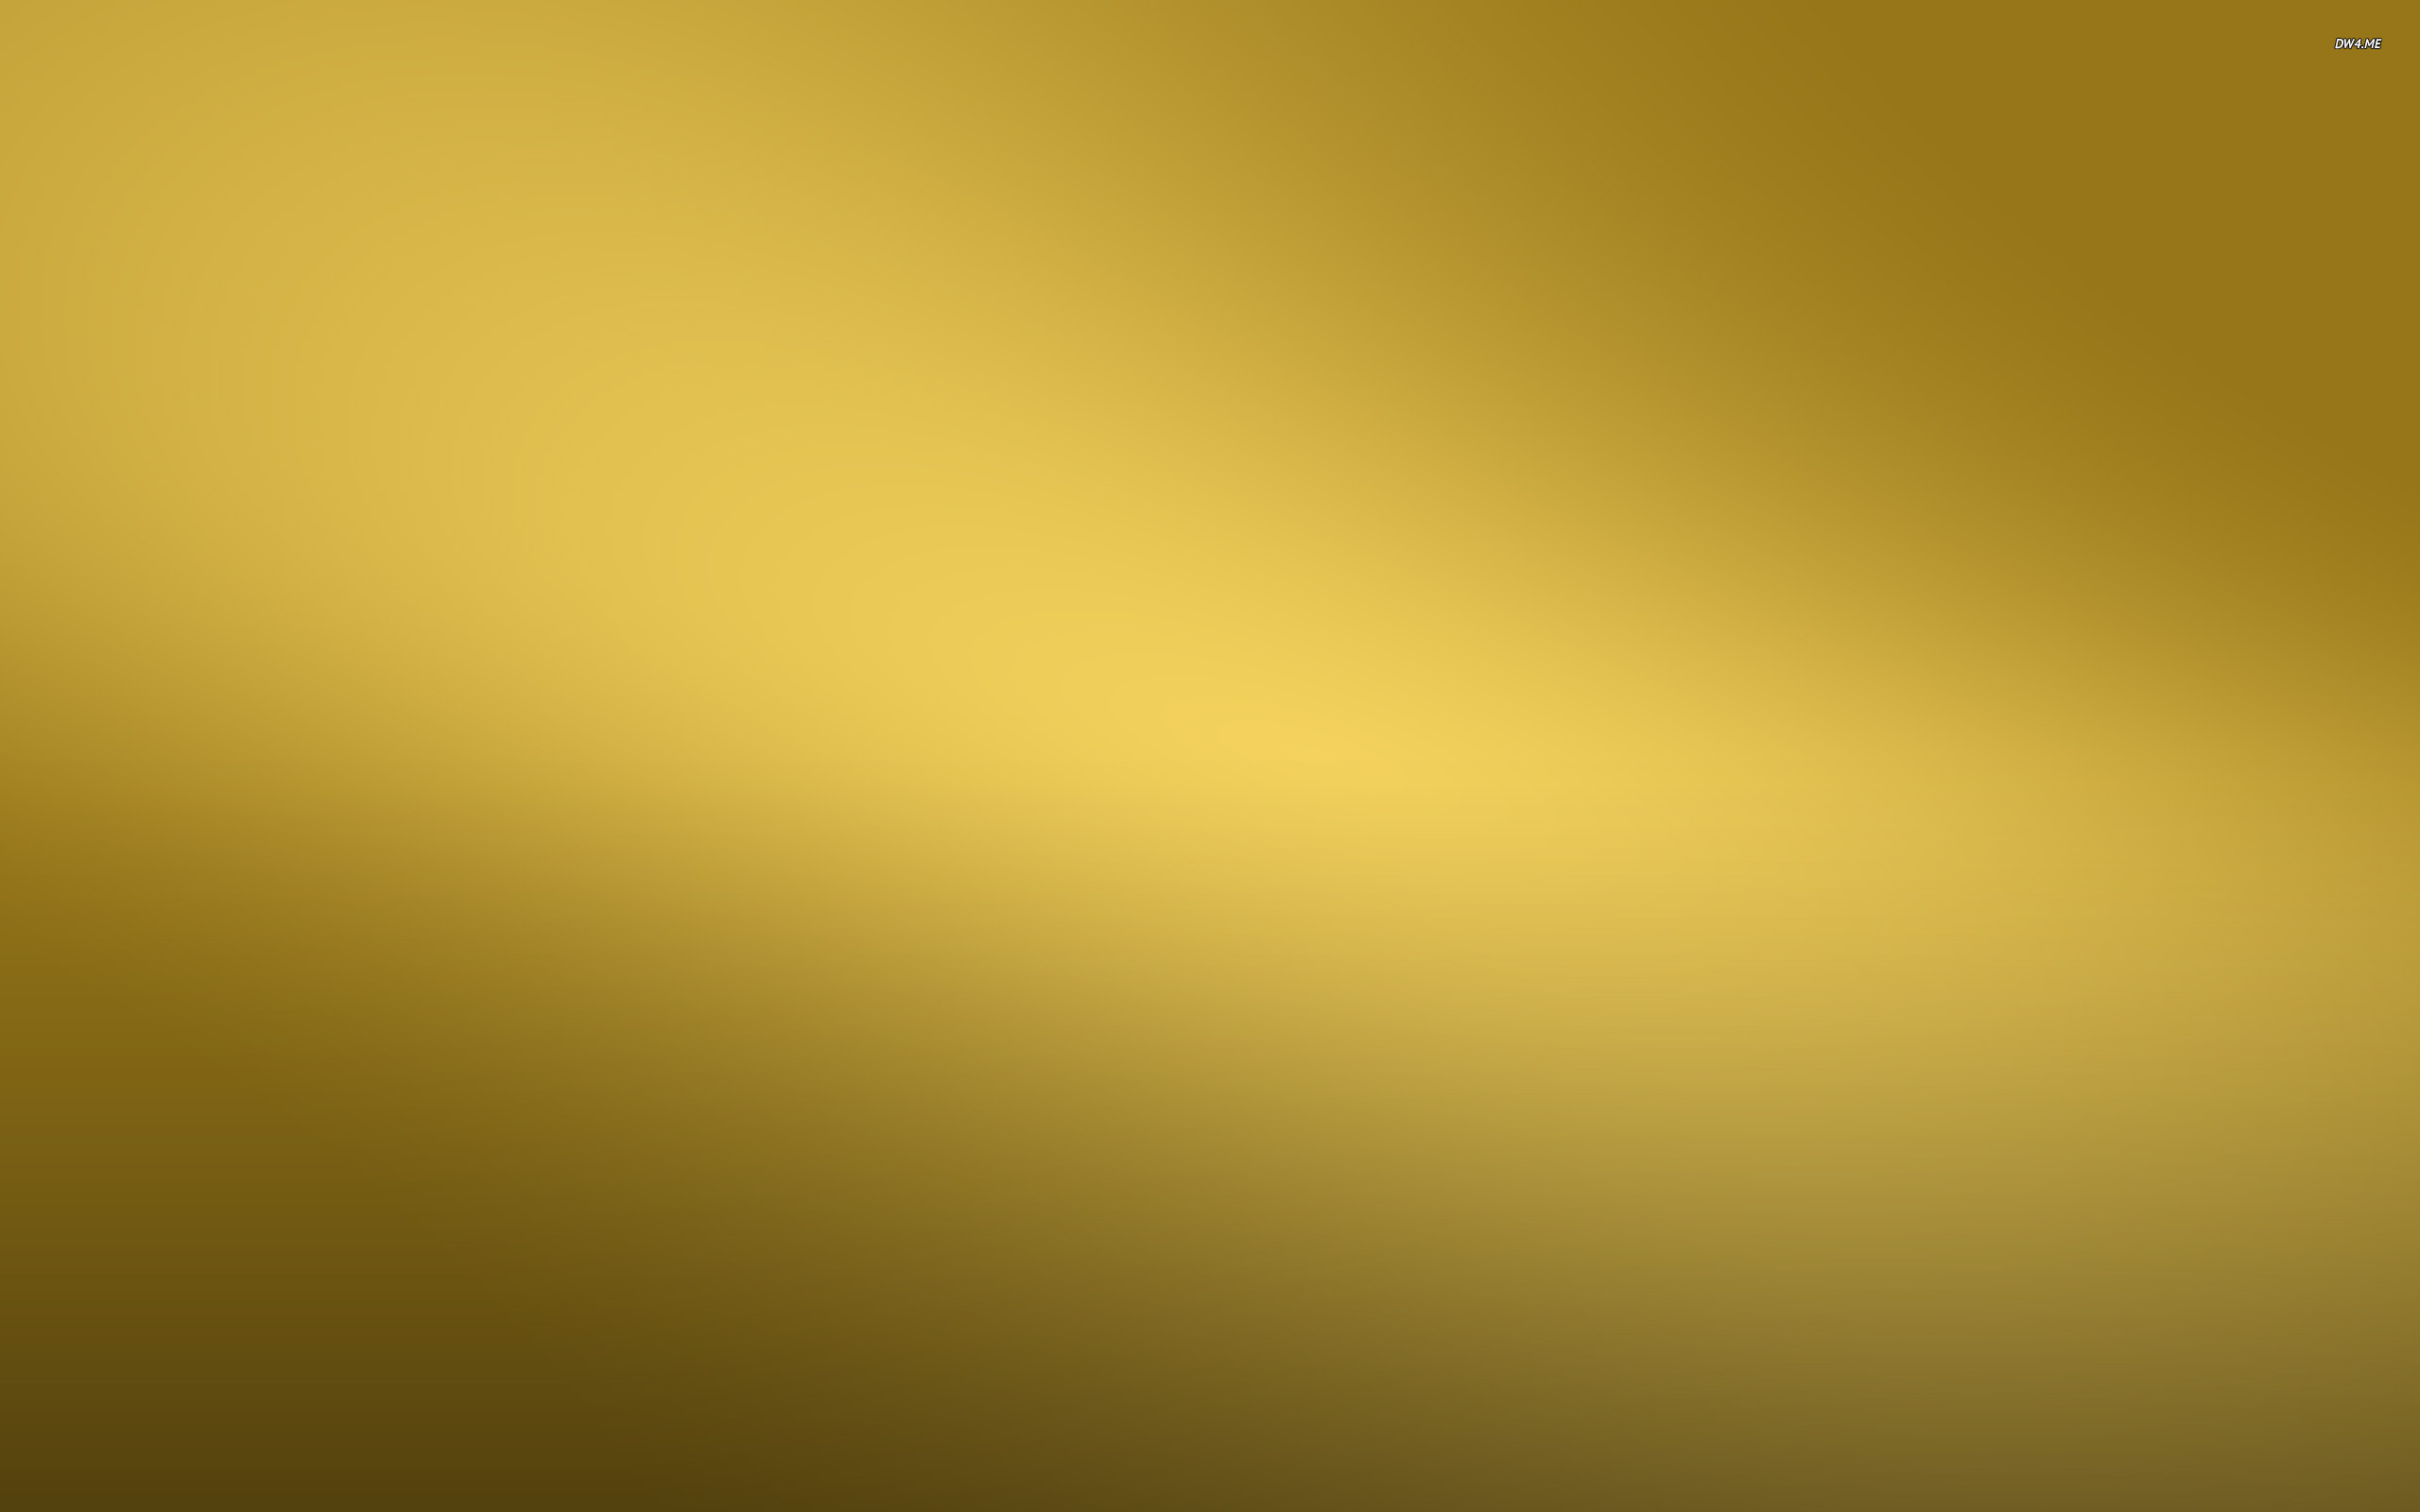 Gold wallpaper   585882 2560x1600